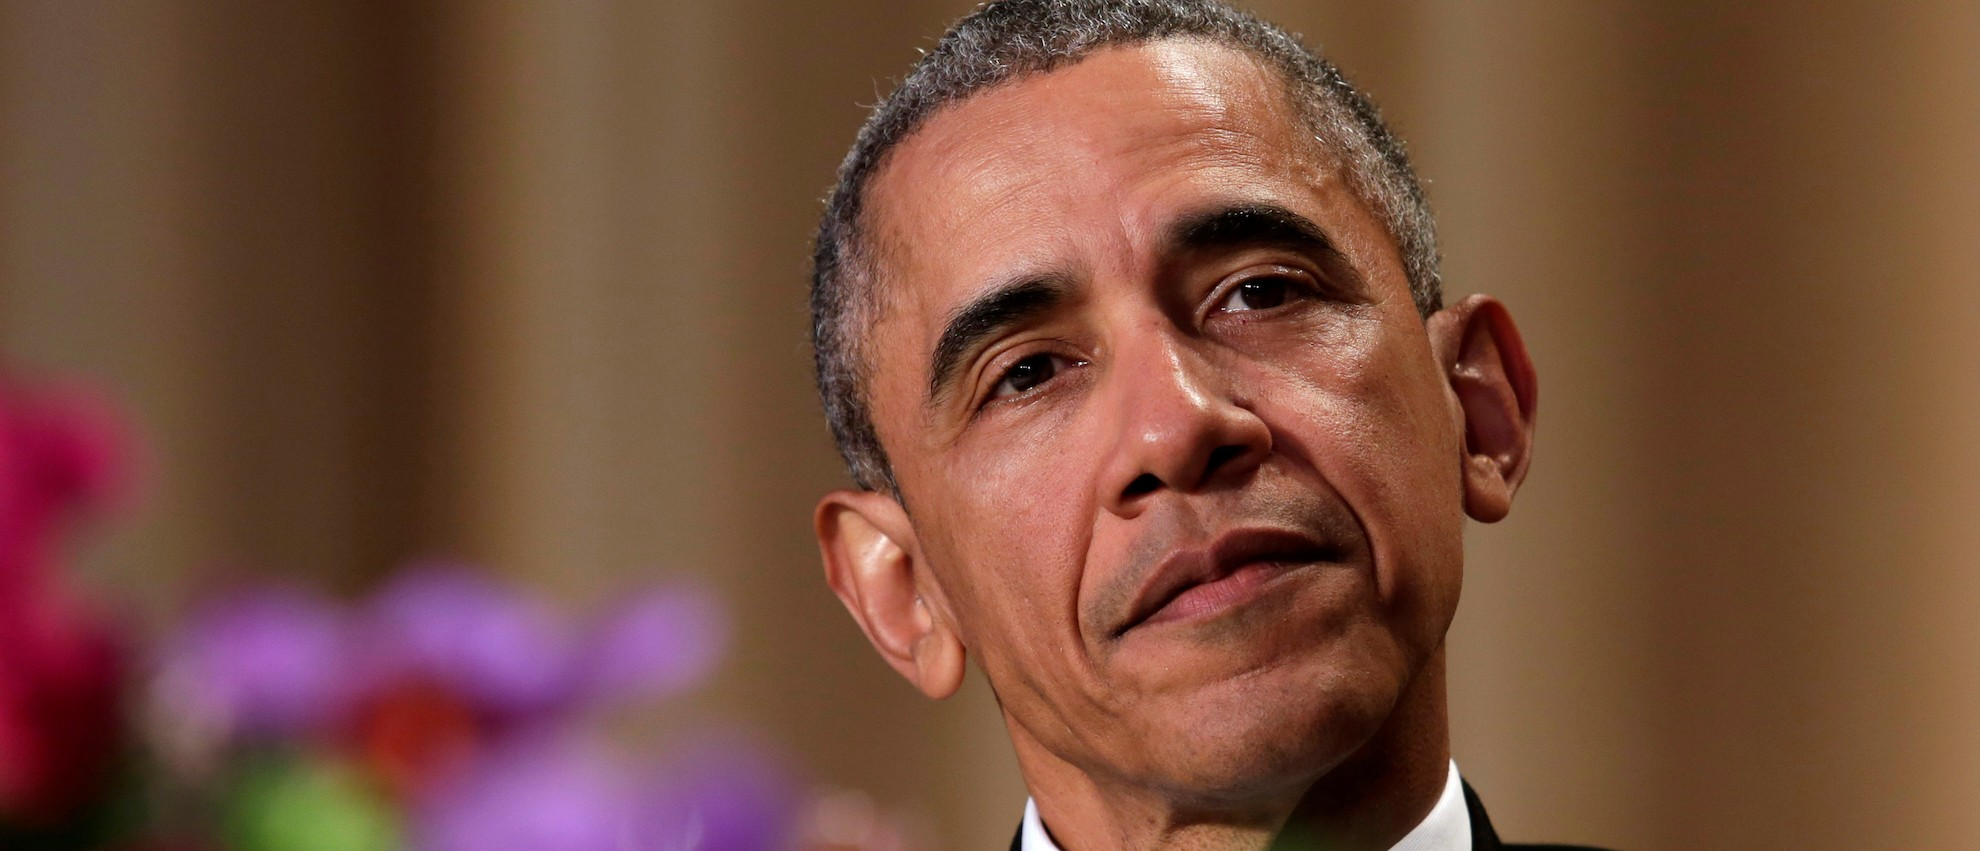 President Barack Obama attends the White House Correspondents' Association annual dinner (Reuters Pictures)